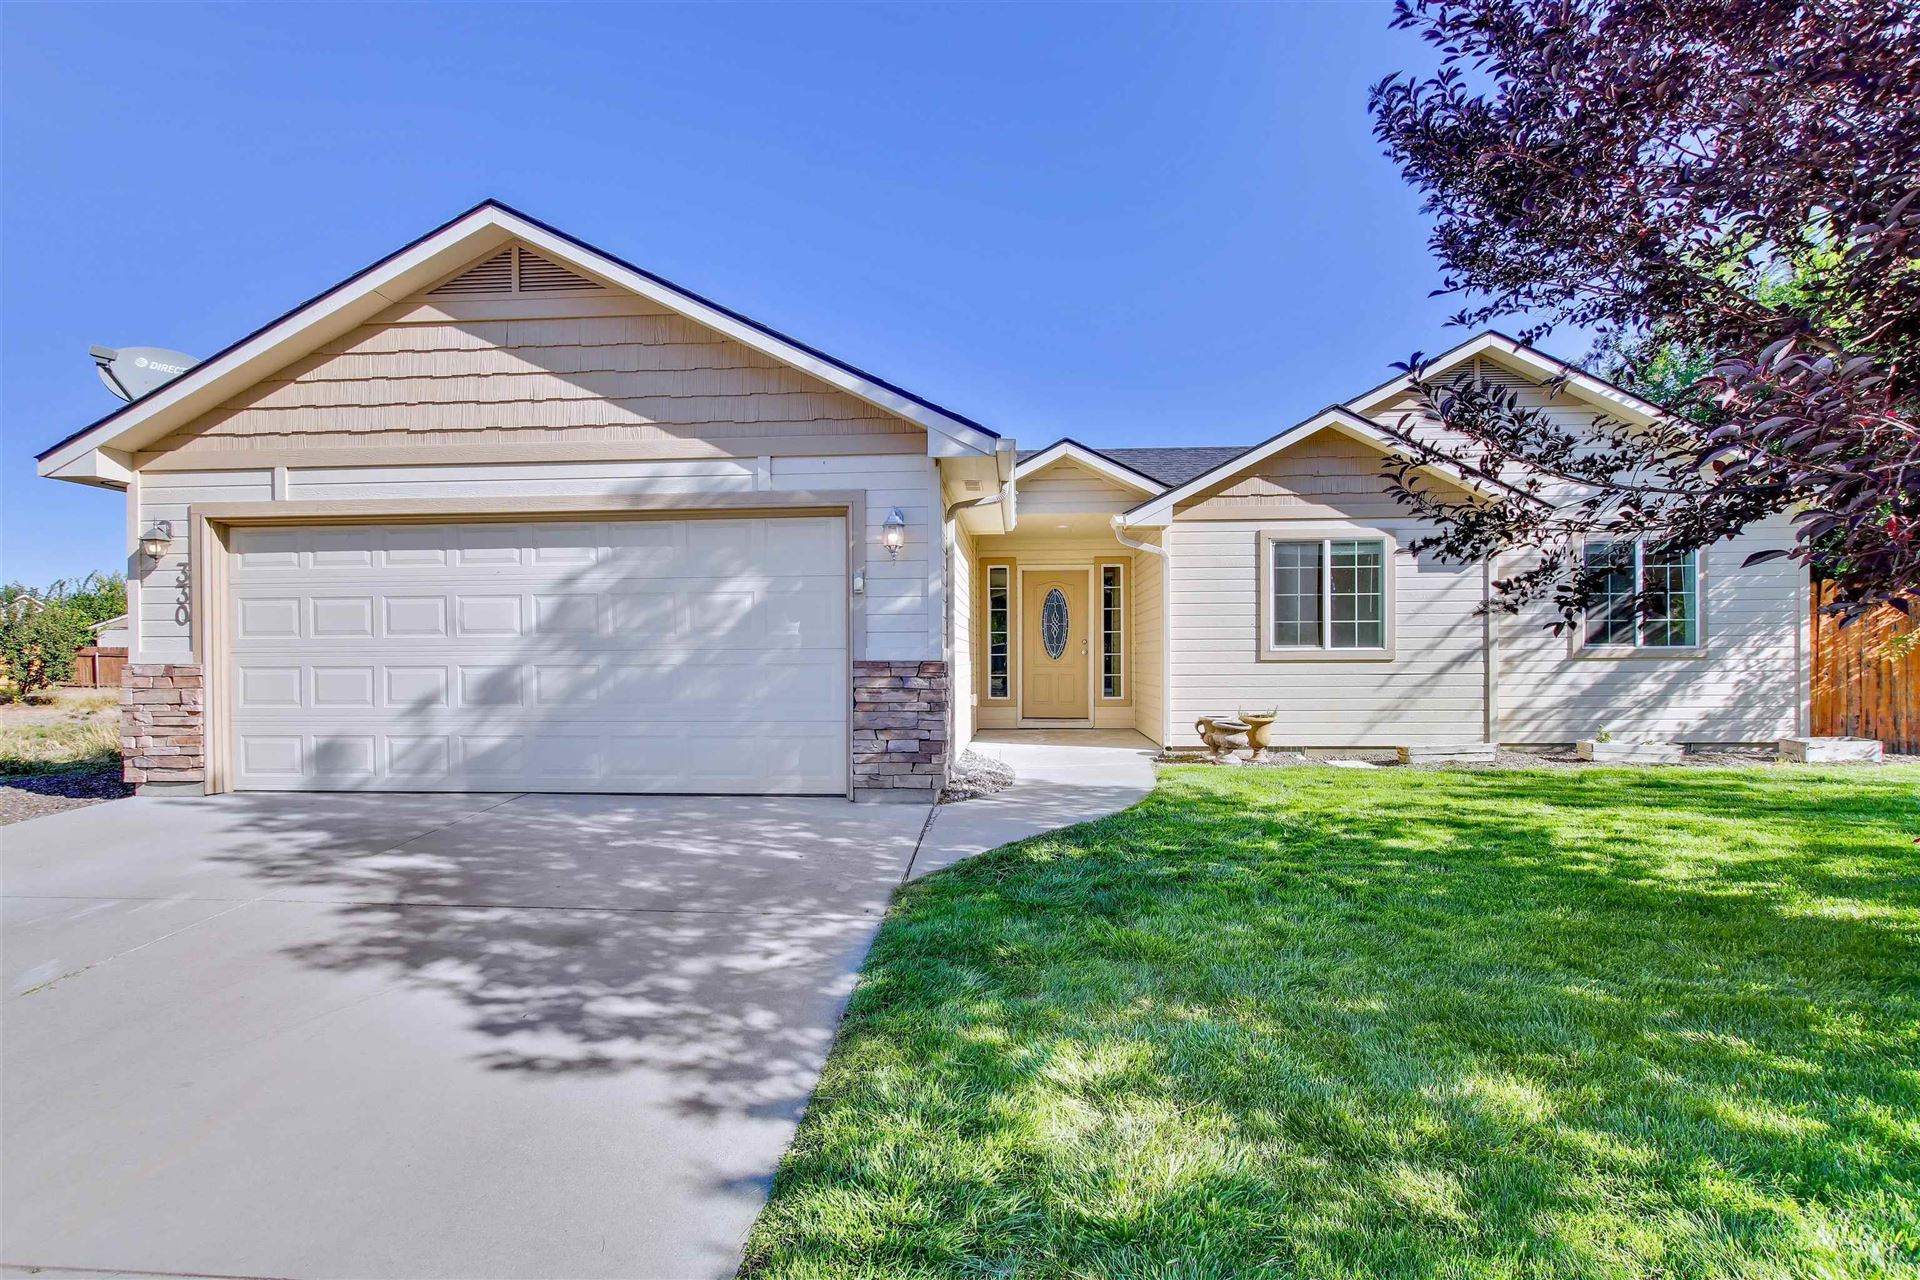 330 NW Foster Dr, Mountain Home, ID 83647 - MLS#: 98817884